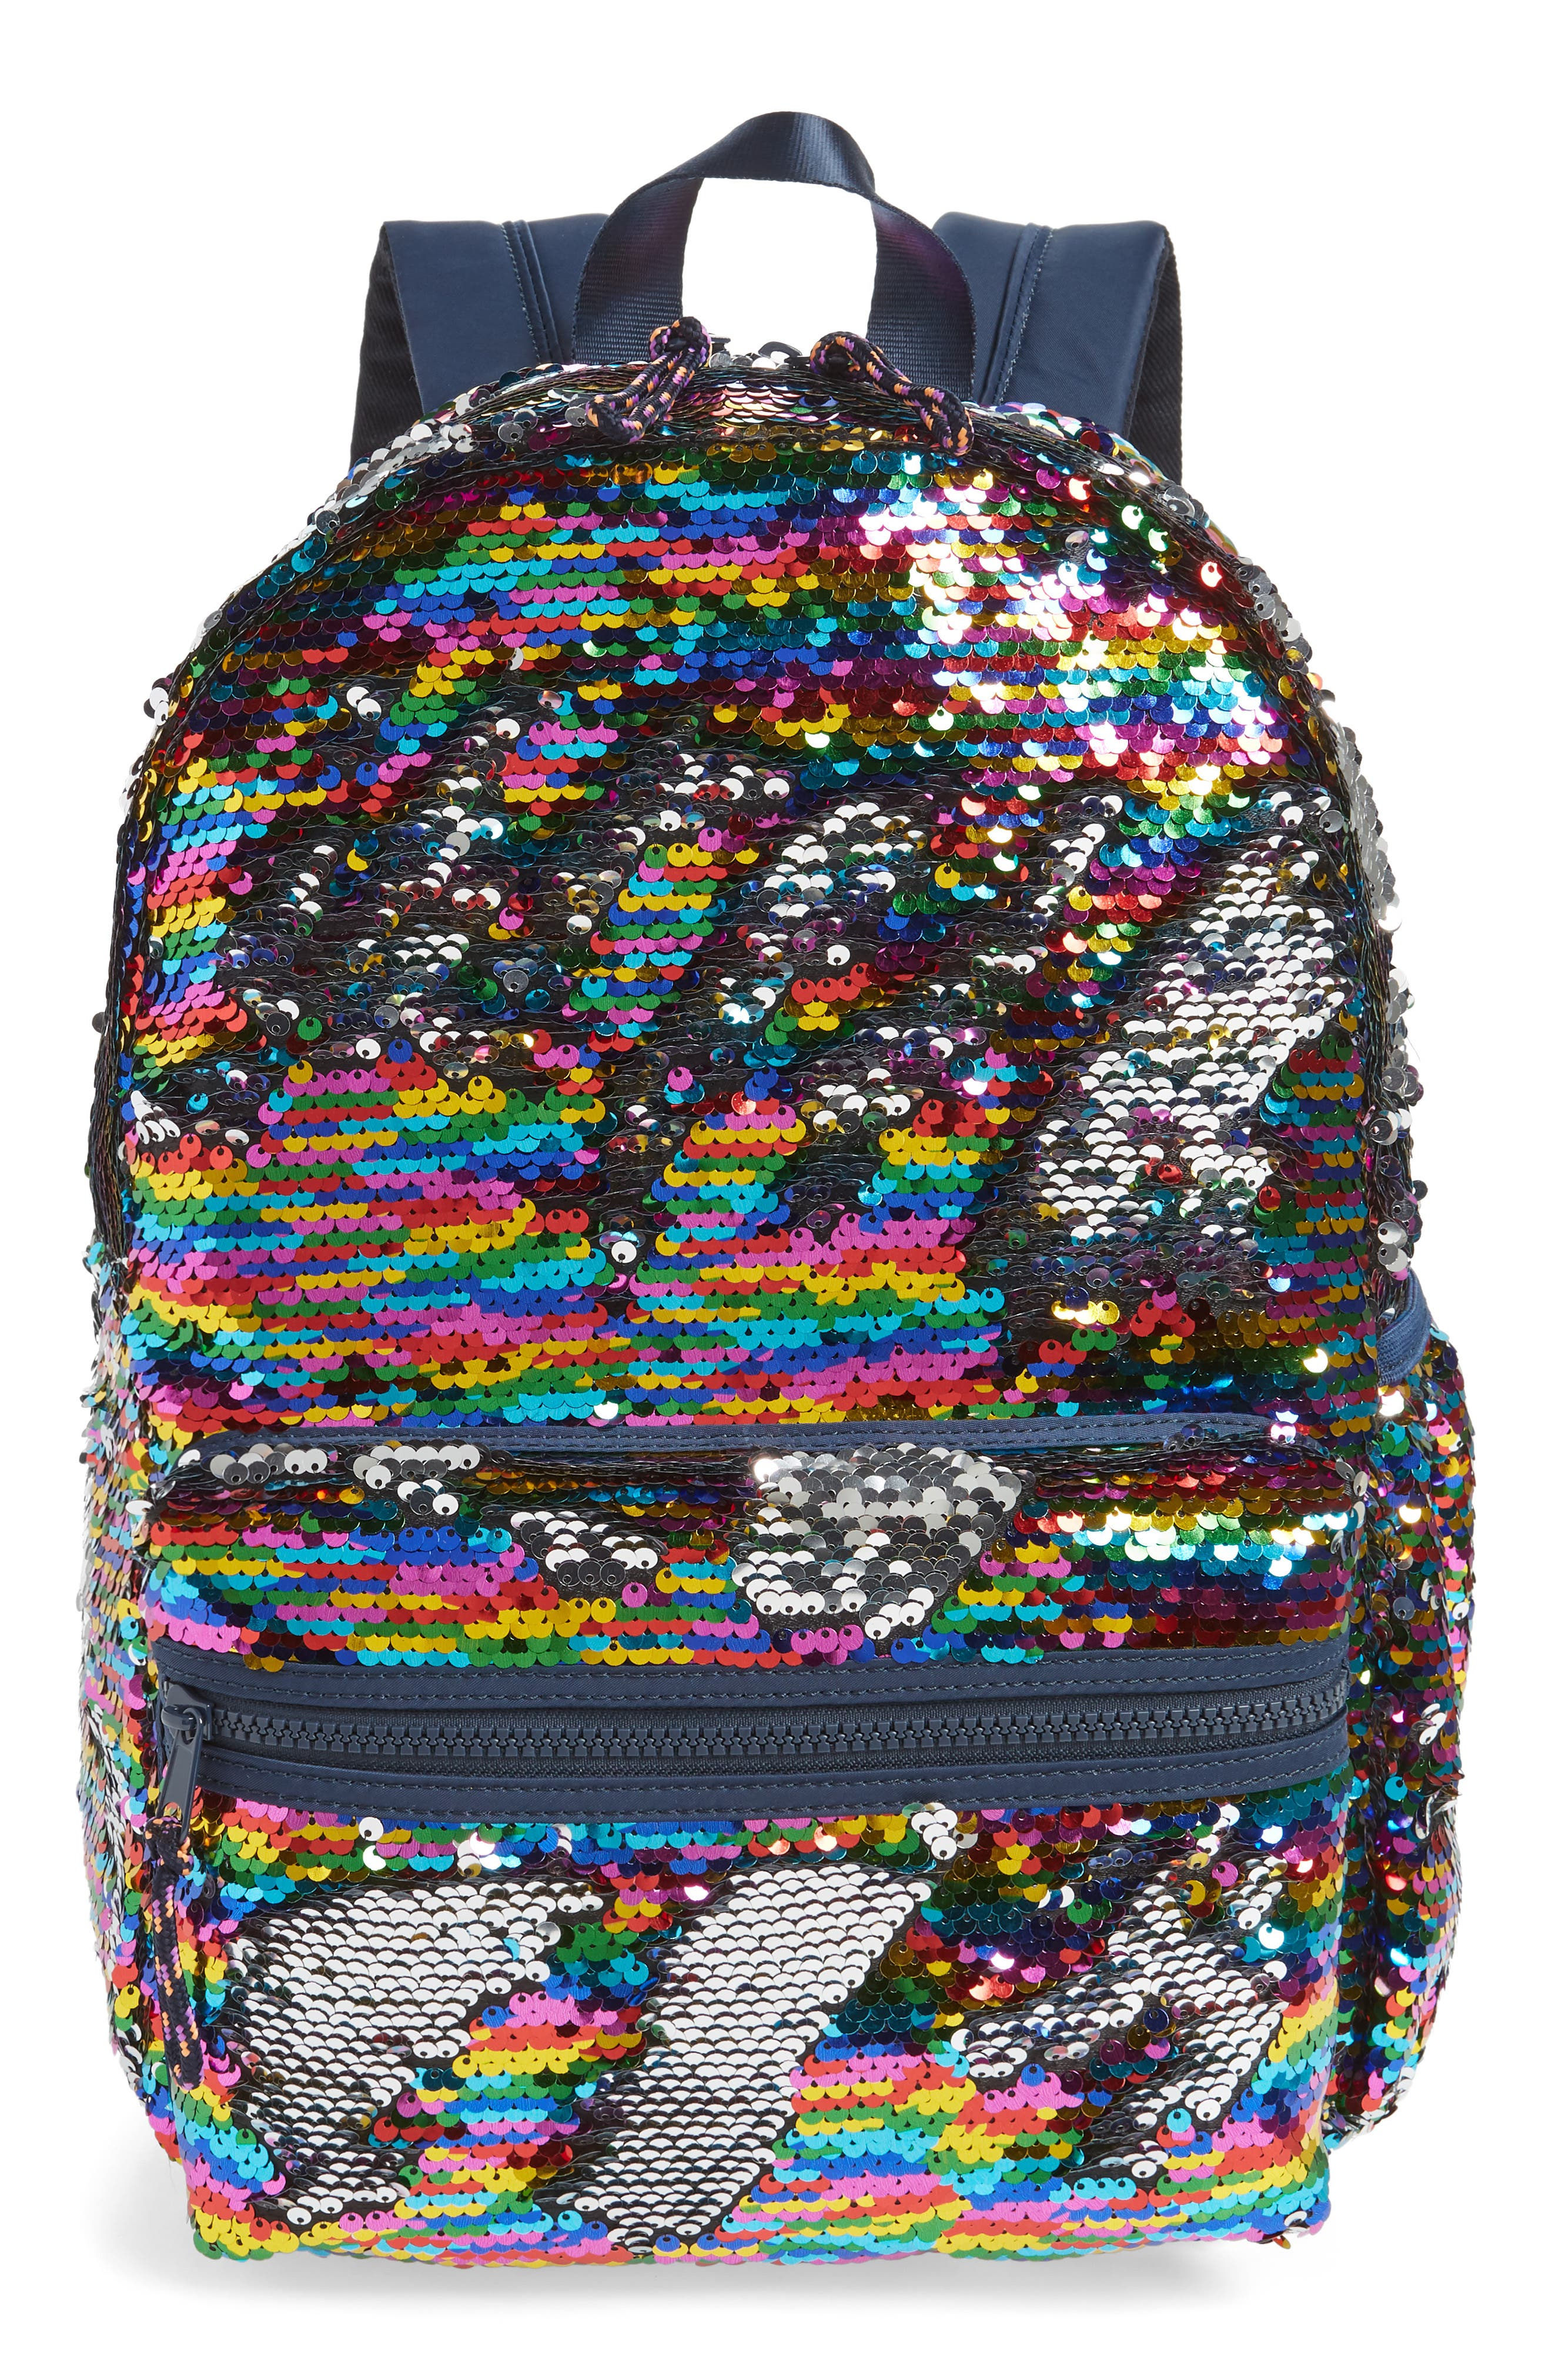 Sequin Backpack,                             Main thumbnail 1, color,                             965